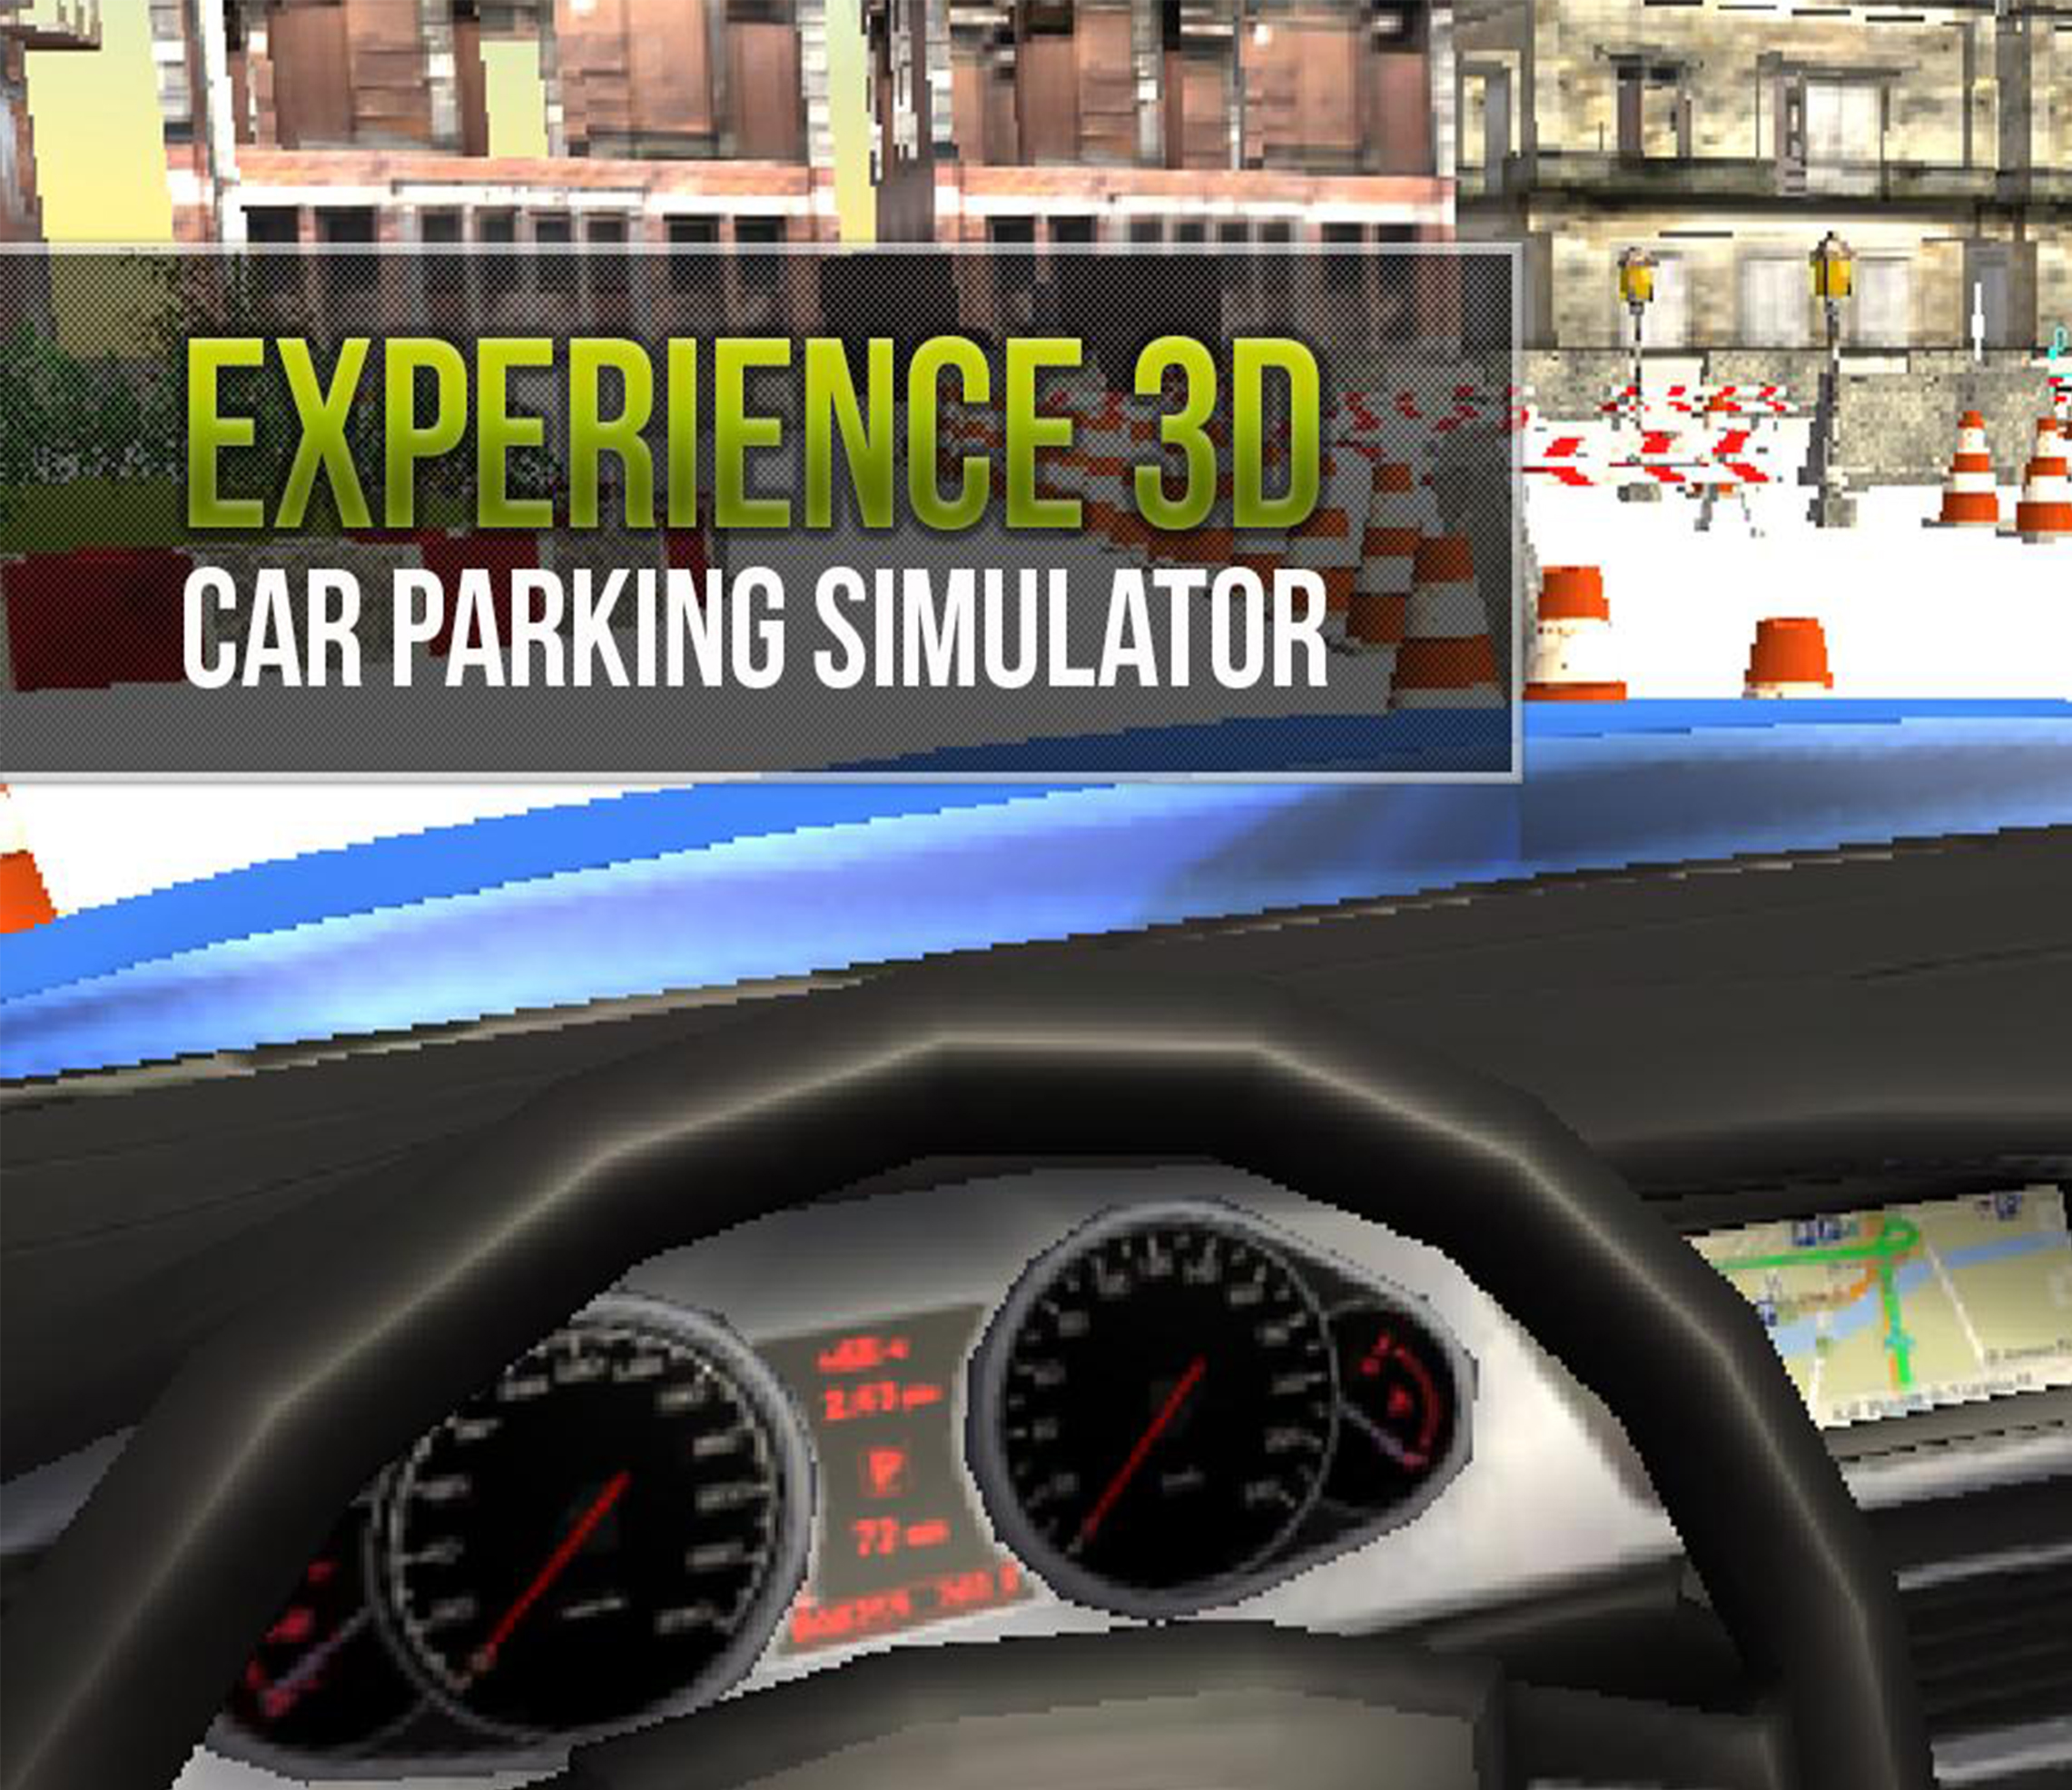 real-car-parking-2017-3d-simulator-0-1543911770.jpg